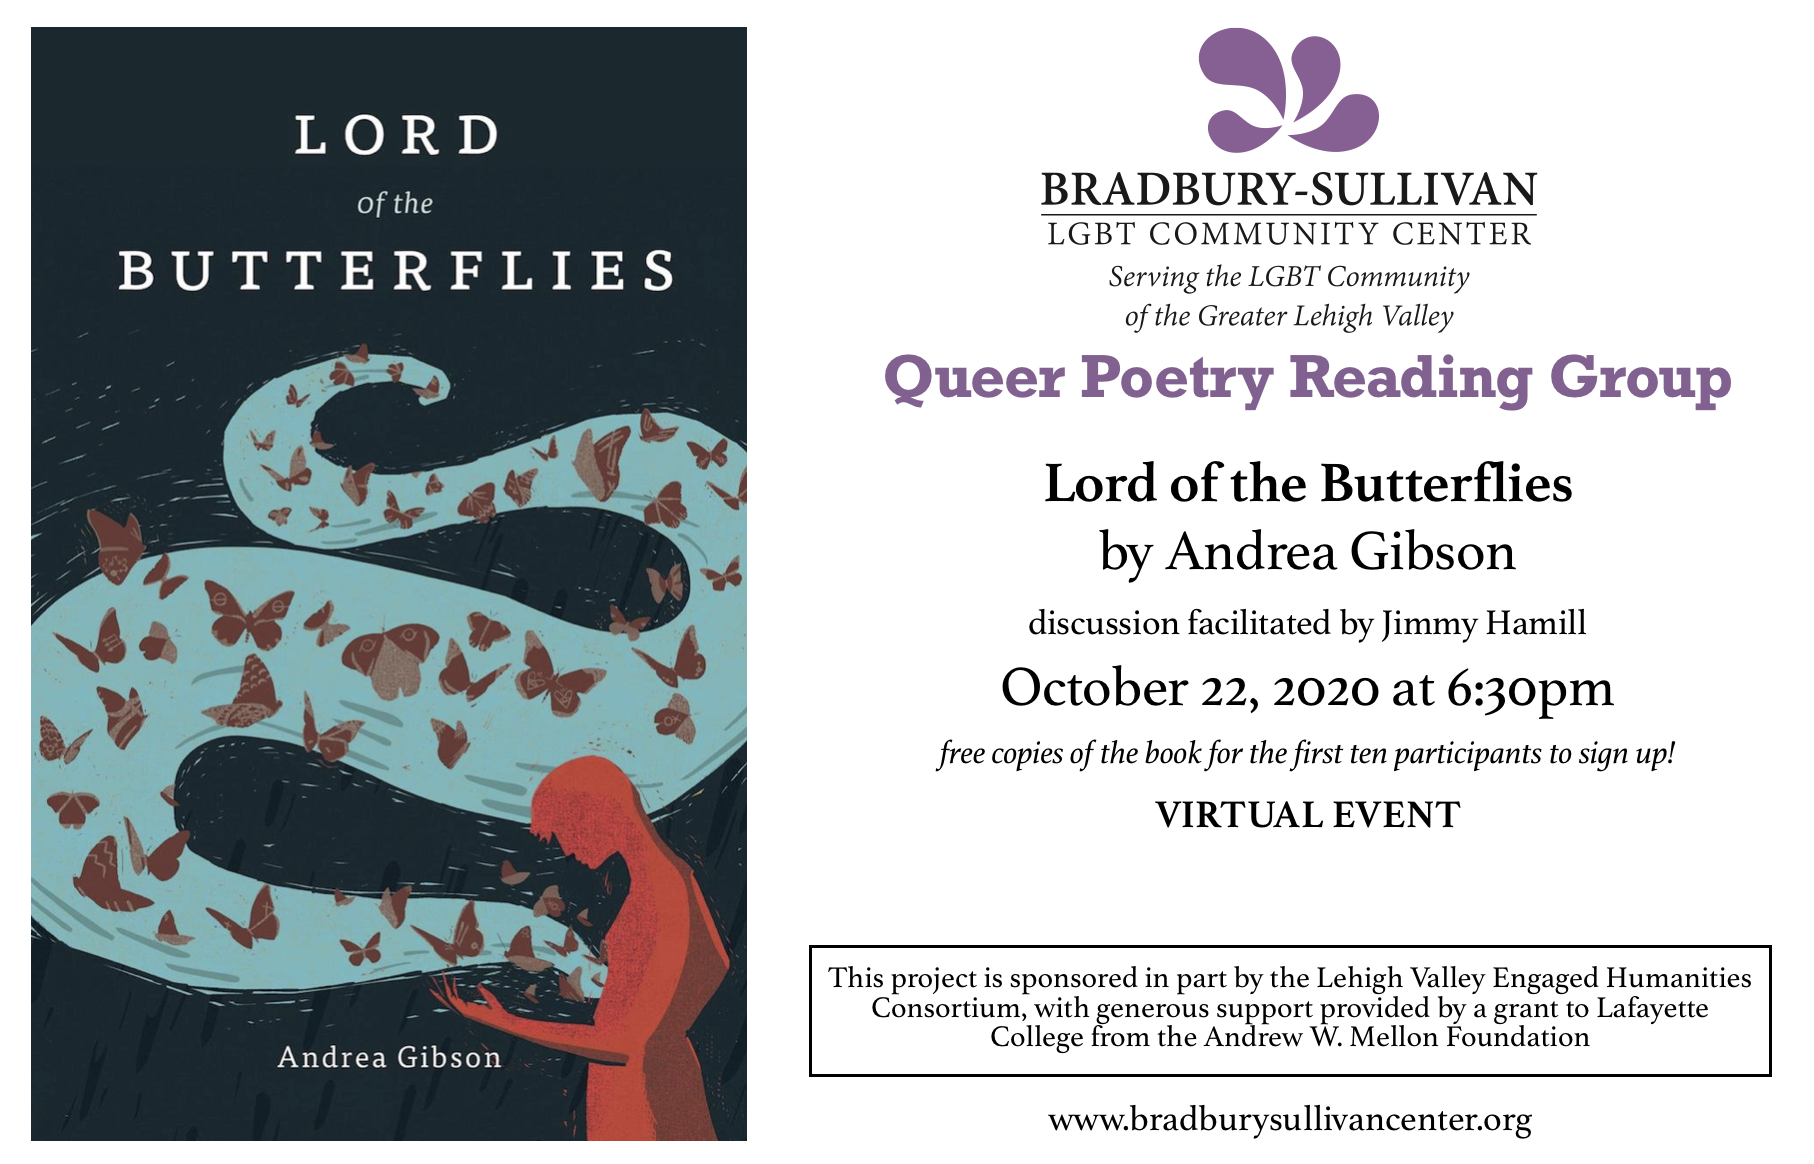 Lord_of_the_Butterflies_-_Queer_Poetry_Reading_Group.png